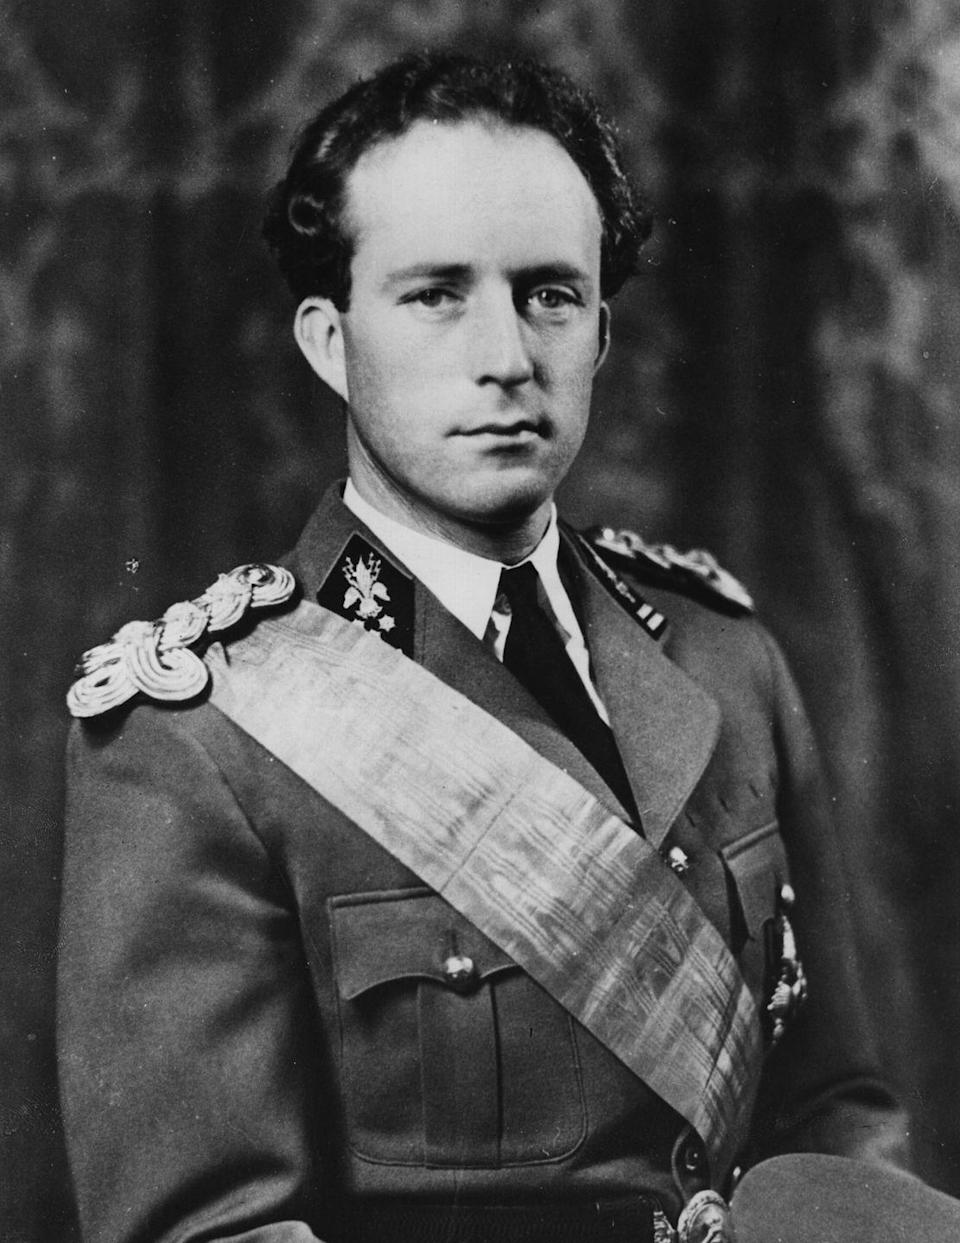 "<p>When the book <em>Dramas in the Belgian Royal House</em> came out, it suggested that King Leopold III, who's the father of Albert II, had an illegitimate daughter. </p><p>As the story goes, Leopold got in a car accident in 1935 and lost his wife because of it. After the incident, he then started a relationship with Austrian skating legend Liselotte Landbeck, which brought their daughter, Ingeborg Verdun, into the world. </p><p>The Royal Palace in Brussels <a href=""https://www.vrt.be/vrtnws/en/2011/02/22/_king_albert_hasahalfsisterandahalfbrother-1-968447/"" rel=""nofollow noopener"" target=""_blank"" data-ylk=""slk:has yet to comment"" class=""link rapid-noclick-resp"">has yet to comment</a>.</p>"